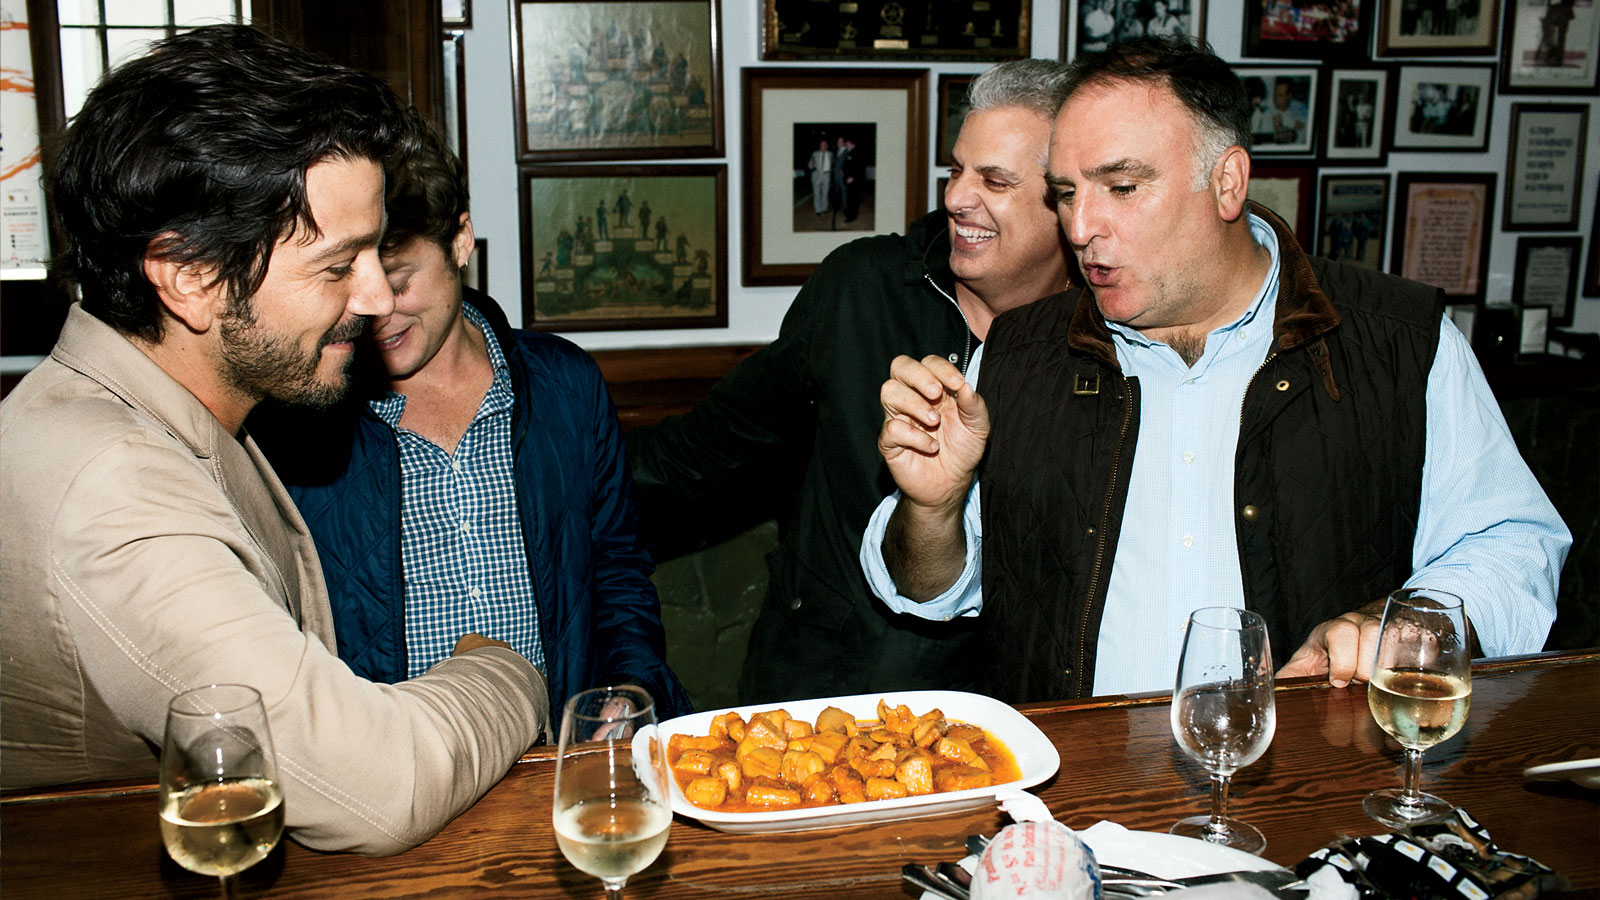 Jose Andres, Eric Ripert, and Diego Luna